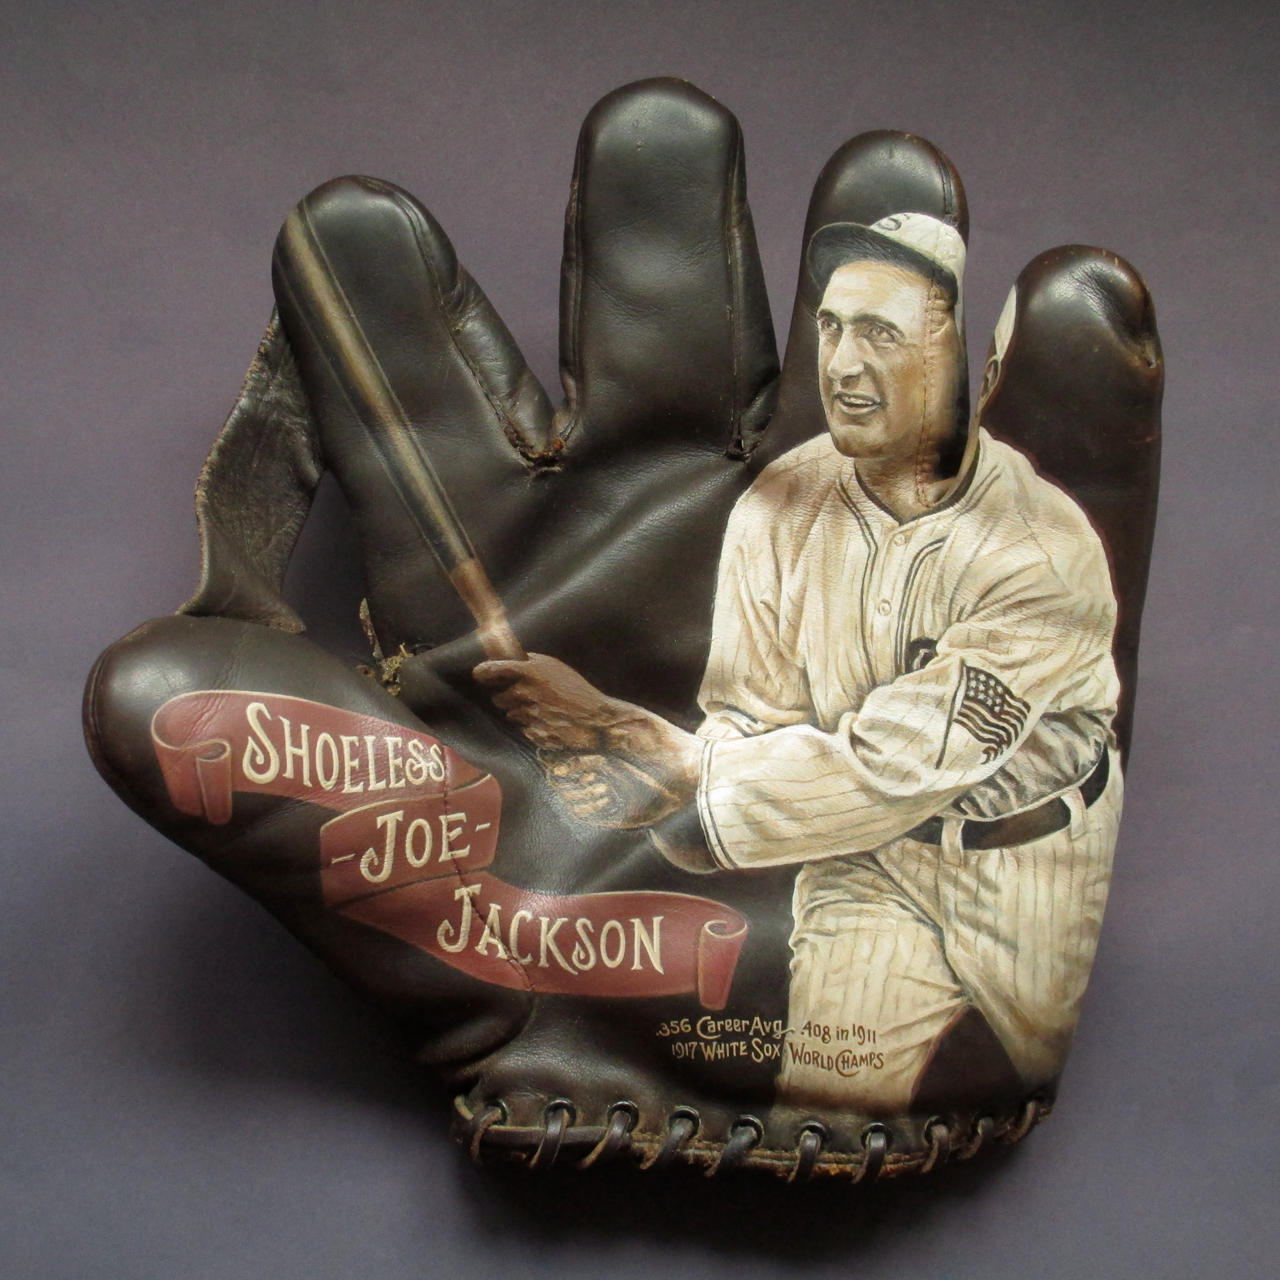 Shoeless Joe Jackson Glove